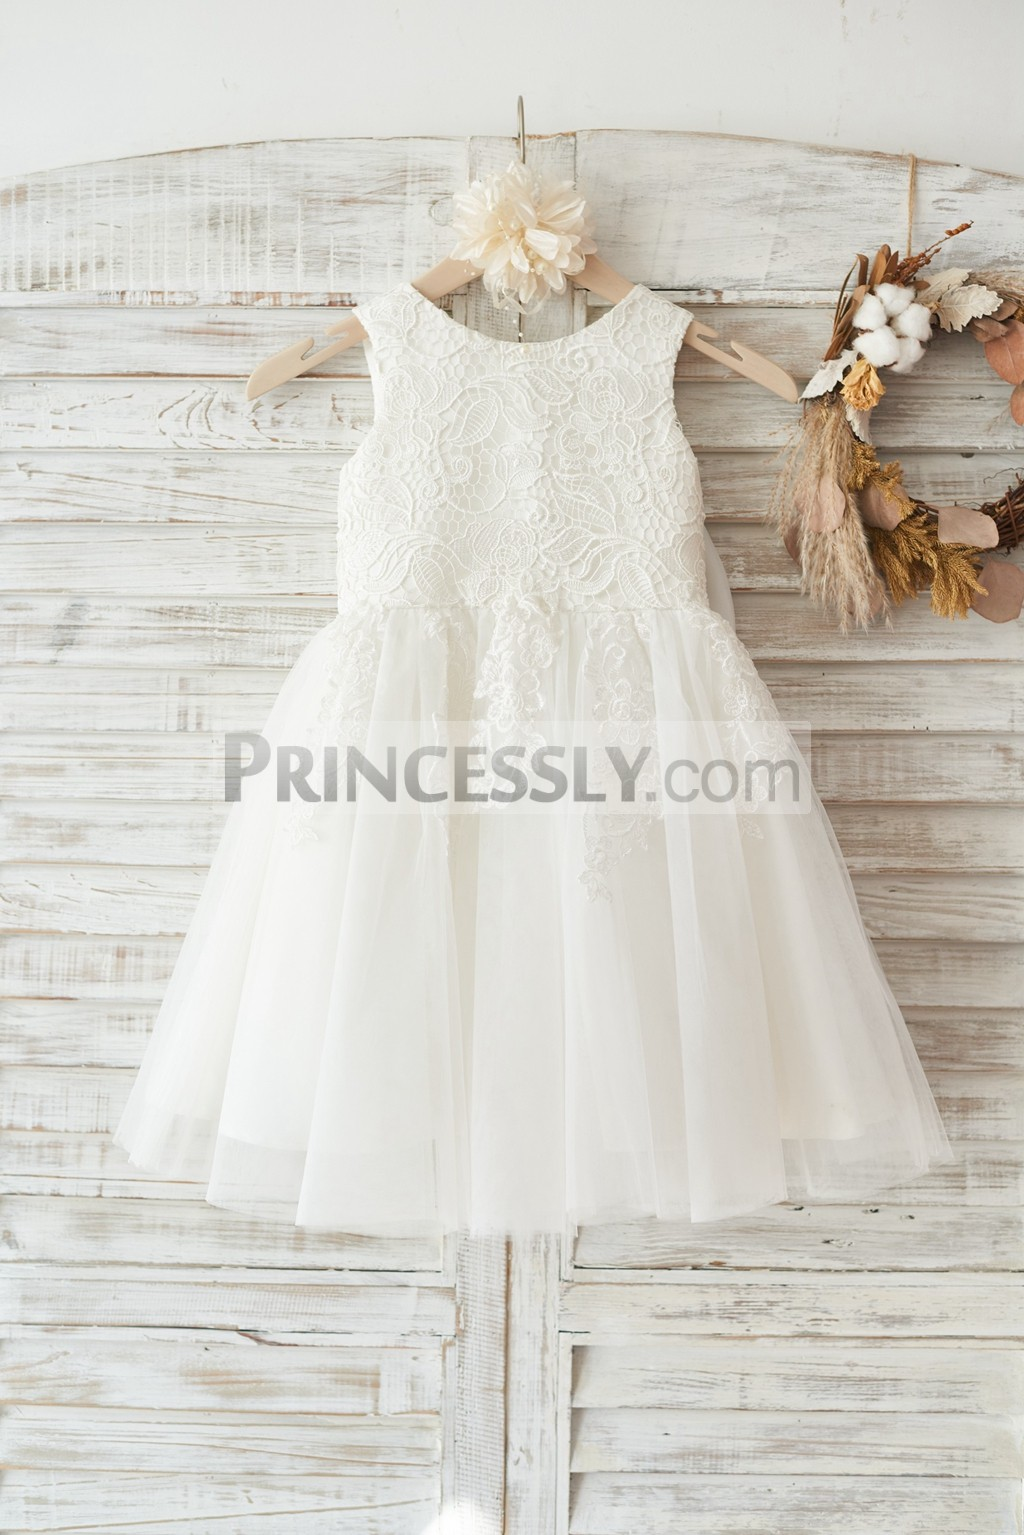 Princessly.com-K1003452-Ivory Lace Tulle Wedding Flower Girl Dress with Big Bow-31